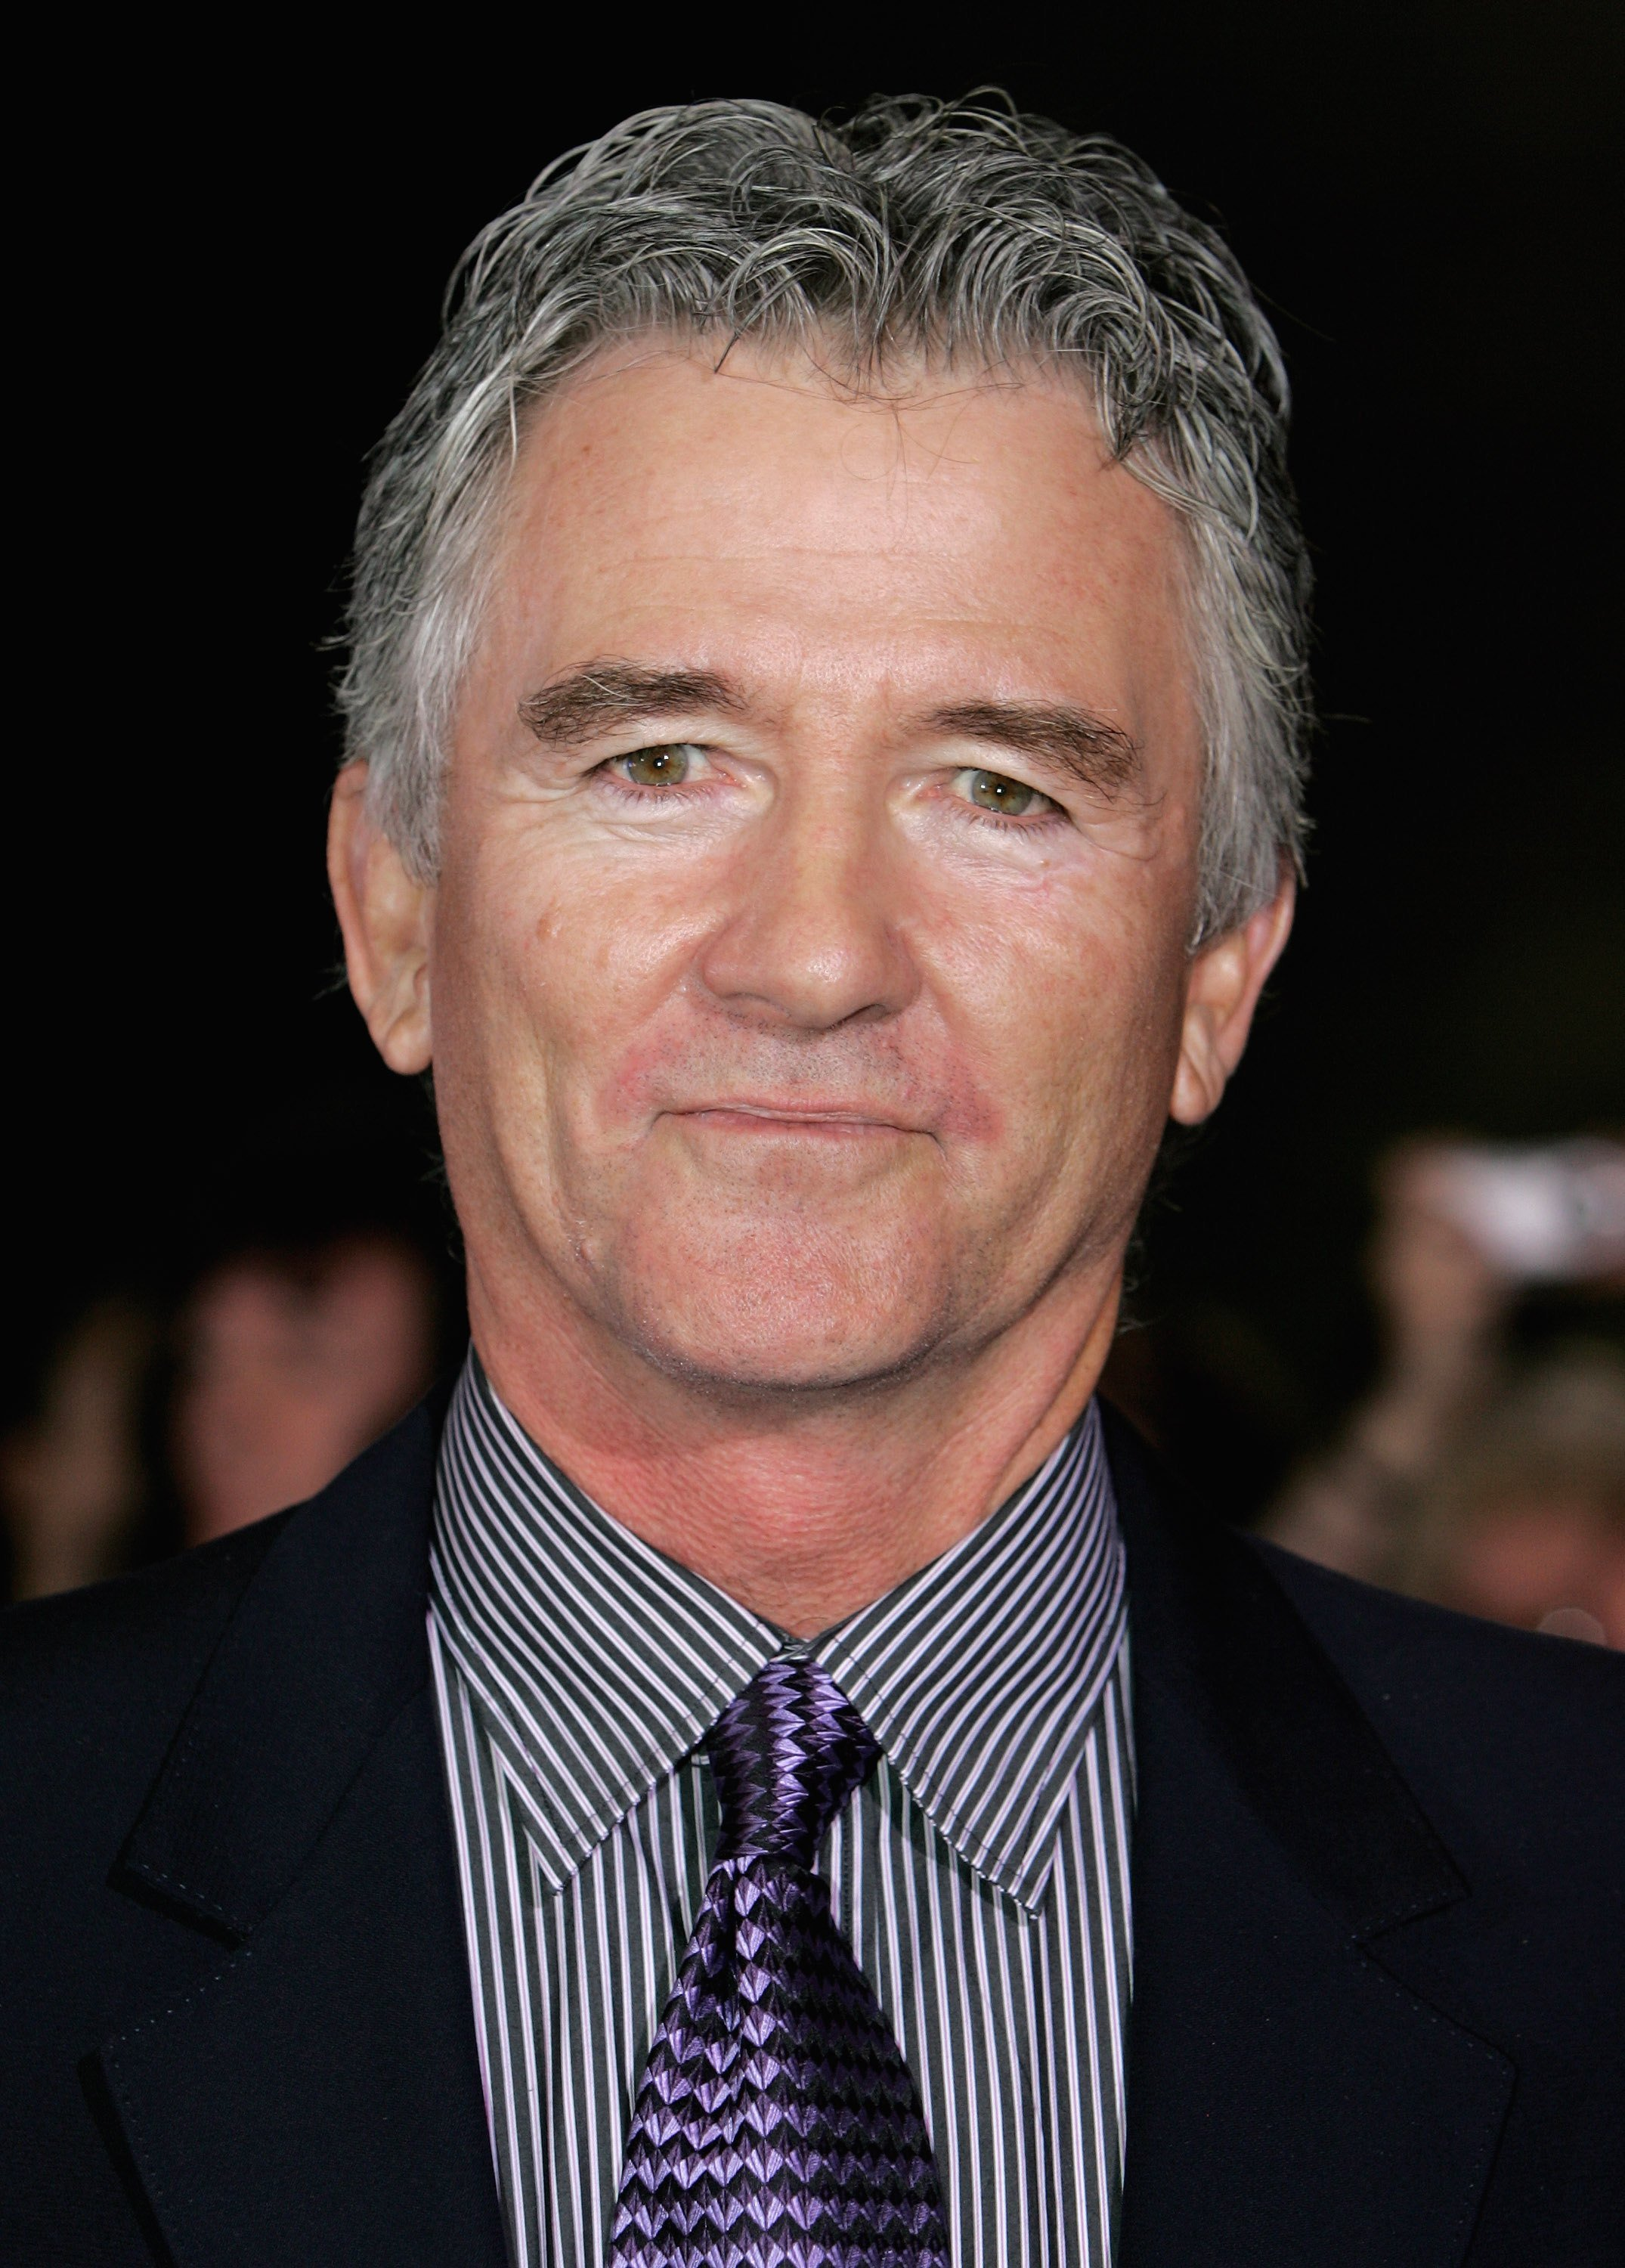 Patrick Duffy kommt am ersten Tag des Northern Rock All Star Cup im Celtic Manor Resort am 26. August 2006 in Newport, Wales, zum Galadinner. | Quelle: Getty Images